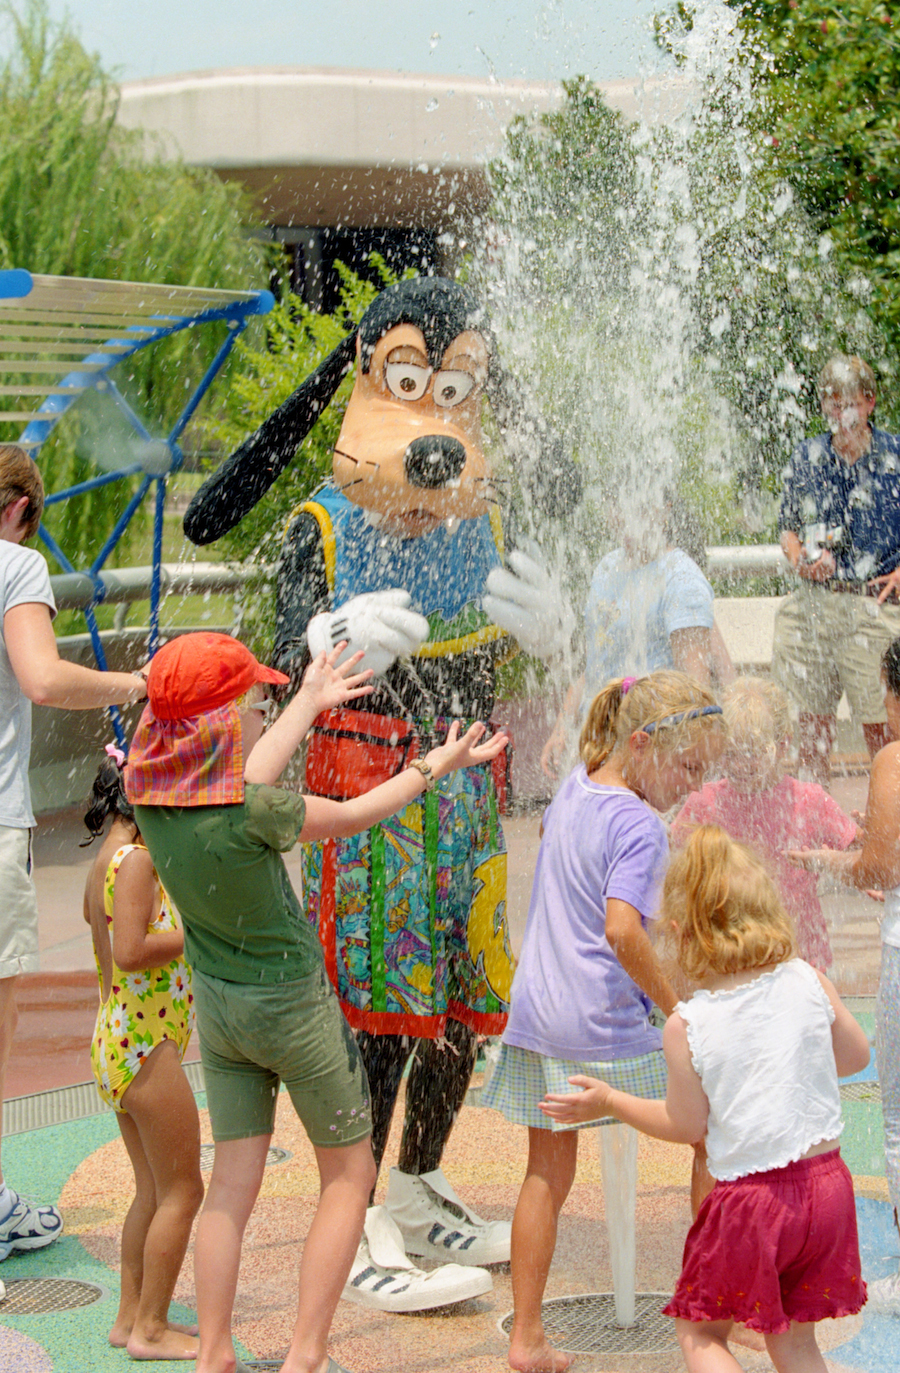 Goofy Keeping Cool in the Splash Pads at Epcot in 2000